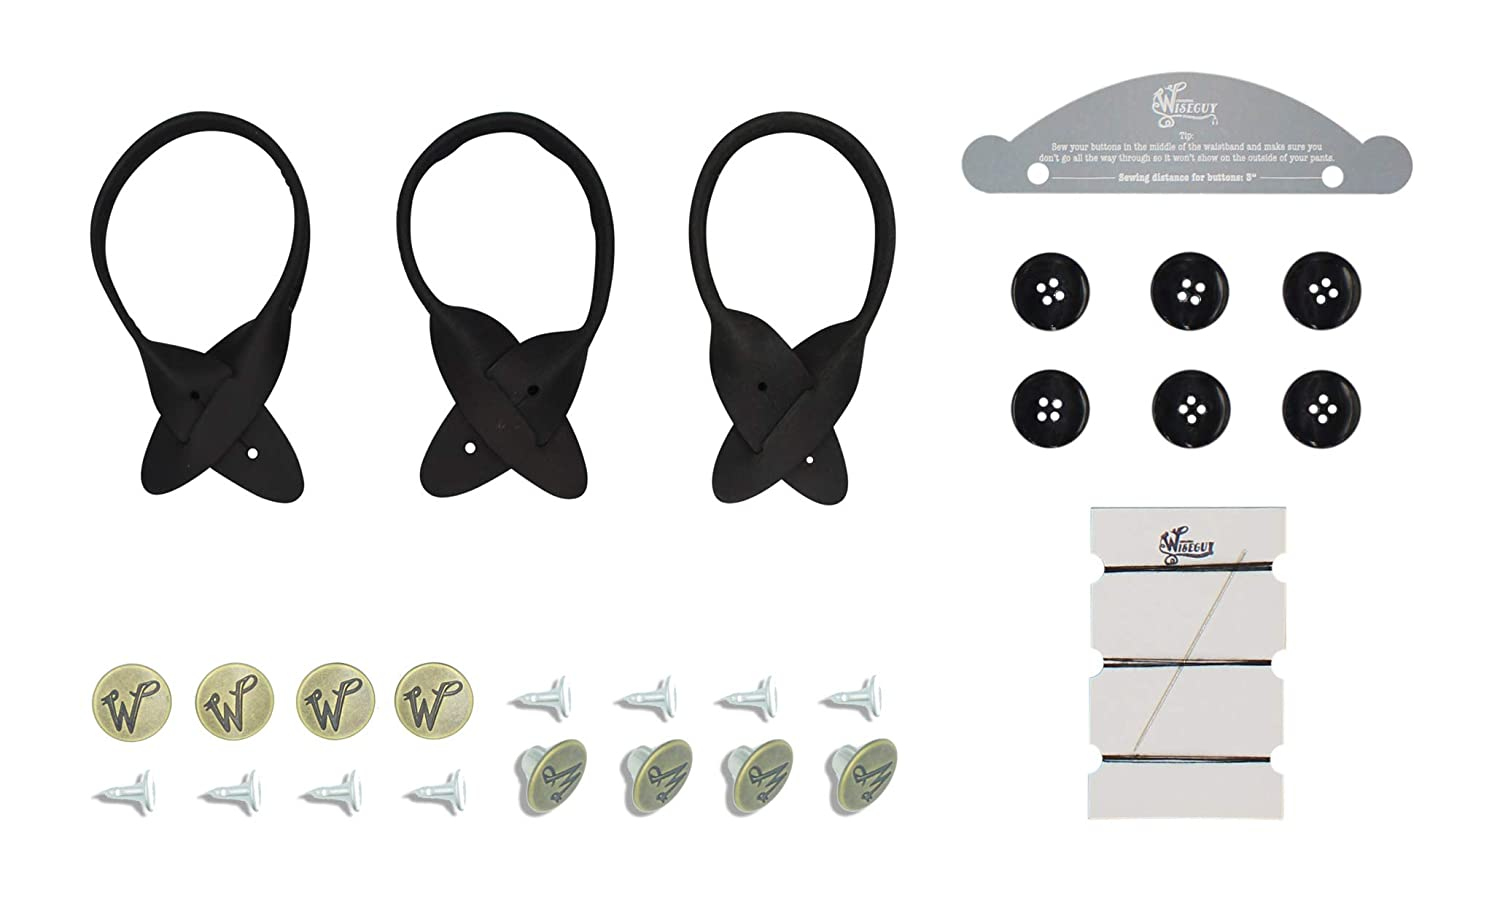 Wiseguy Leather Loops//buttons Set for Suspenders with Hammer-on Buttons